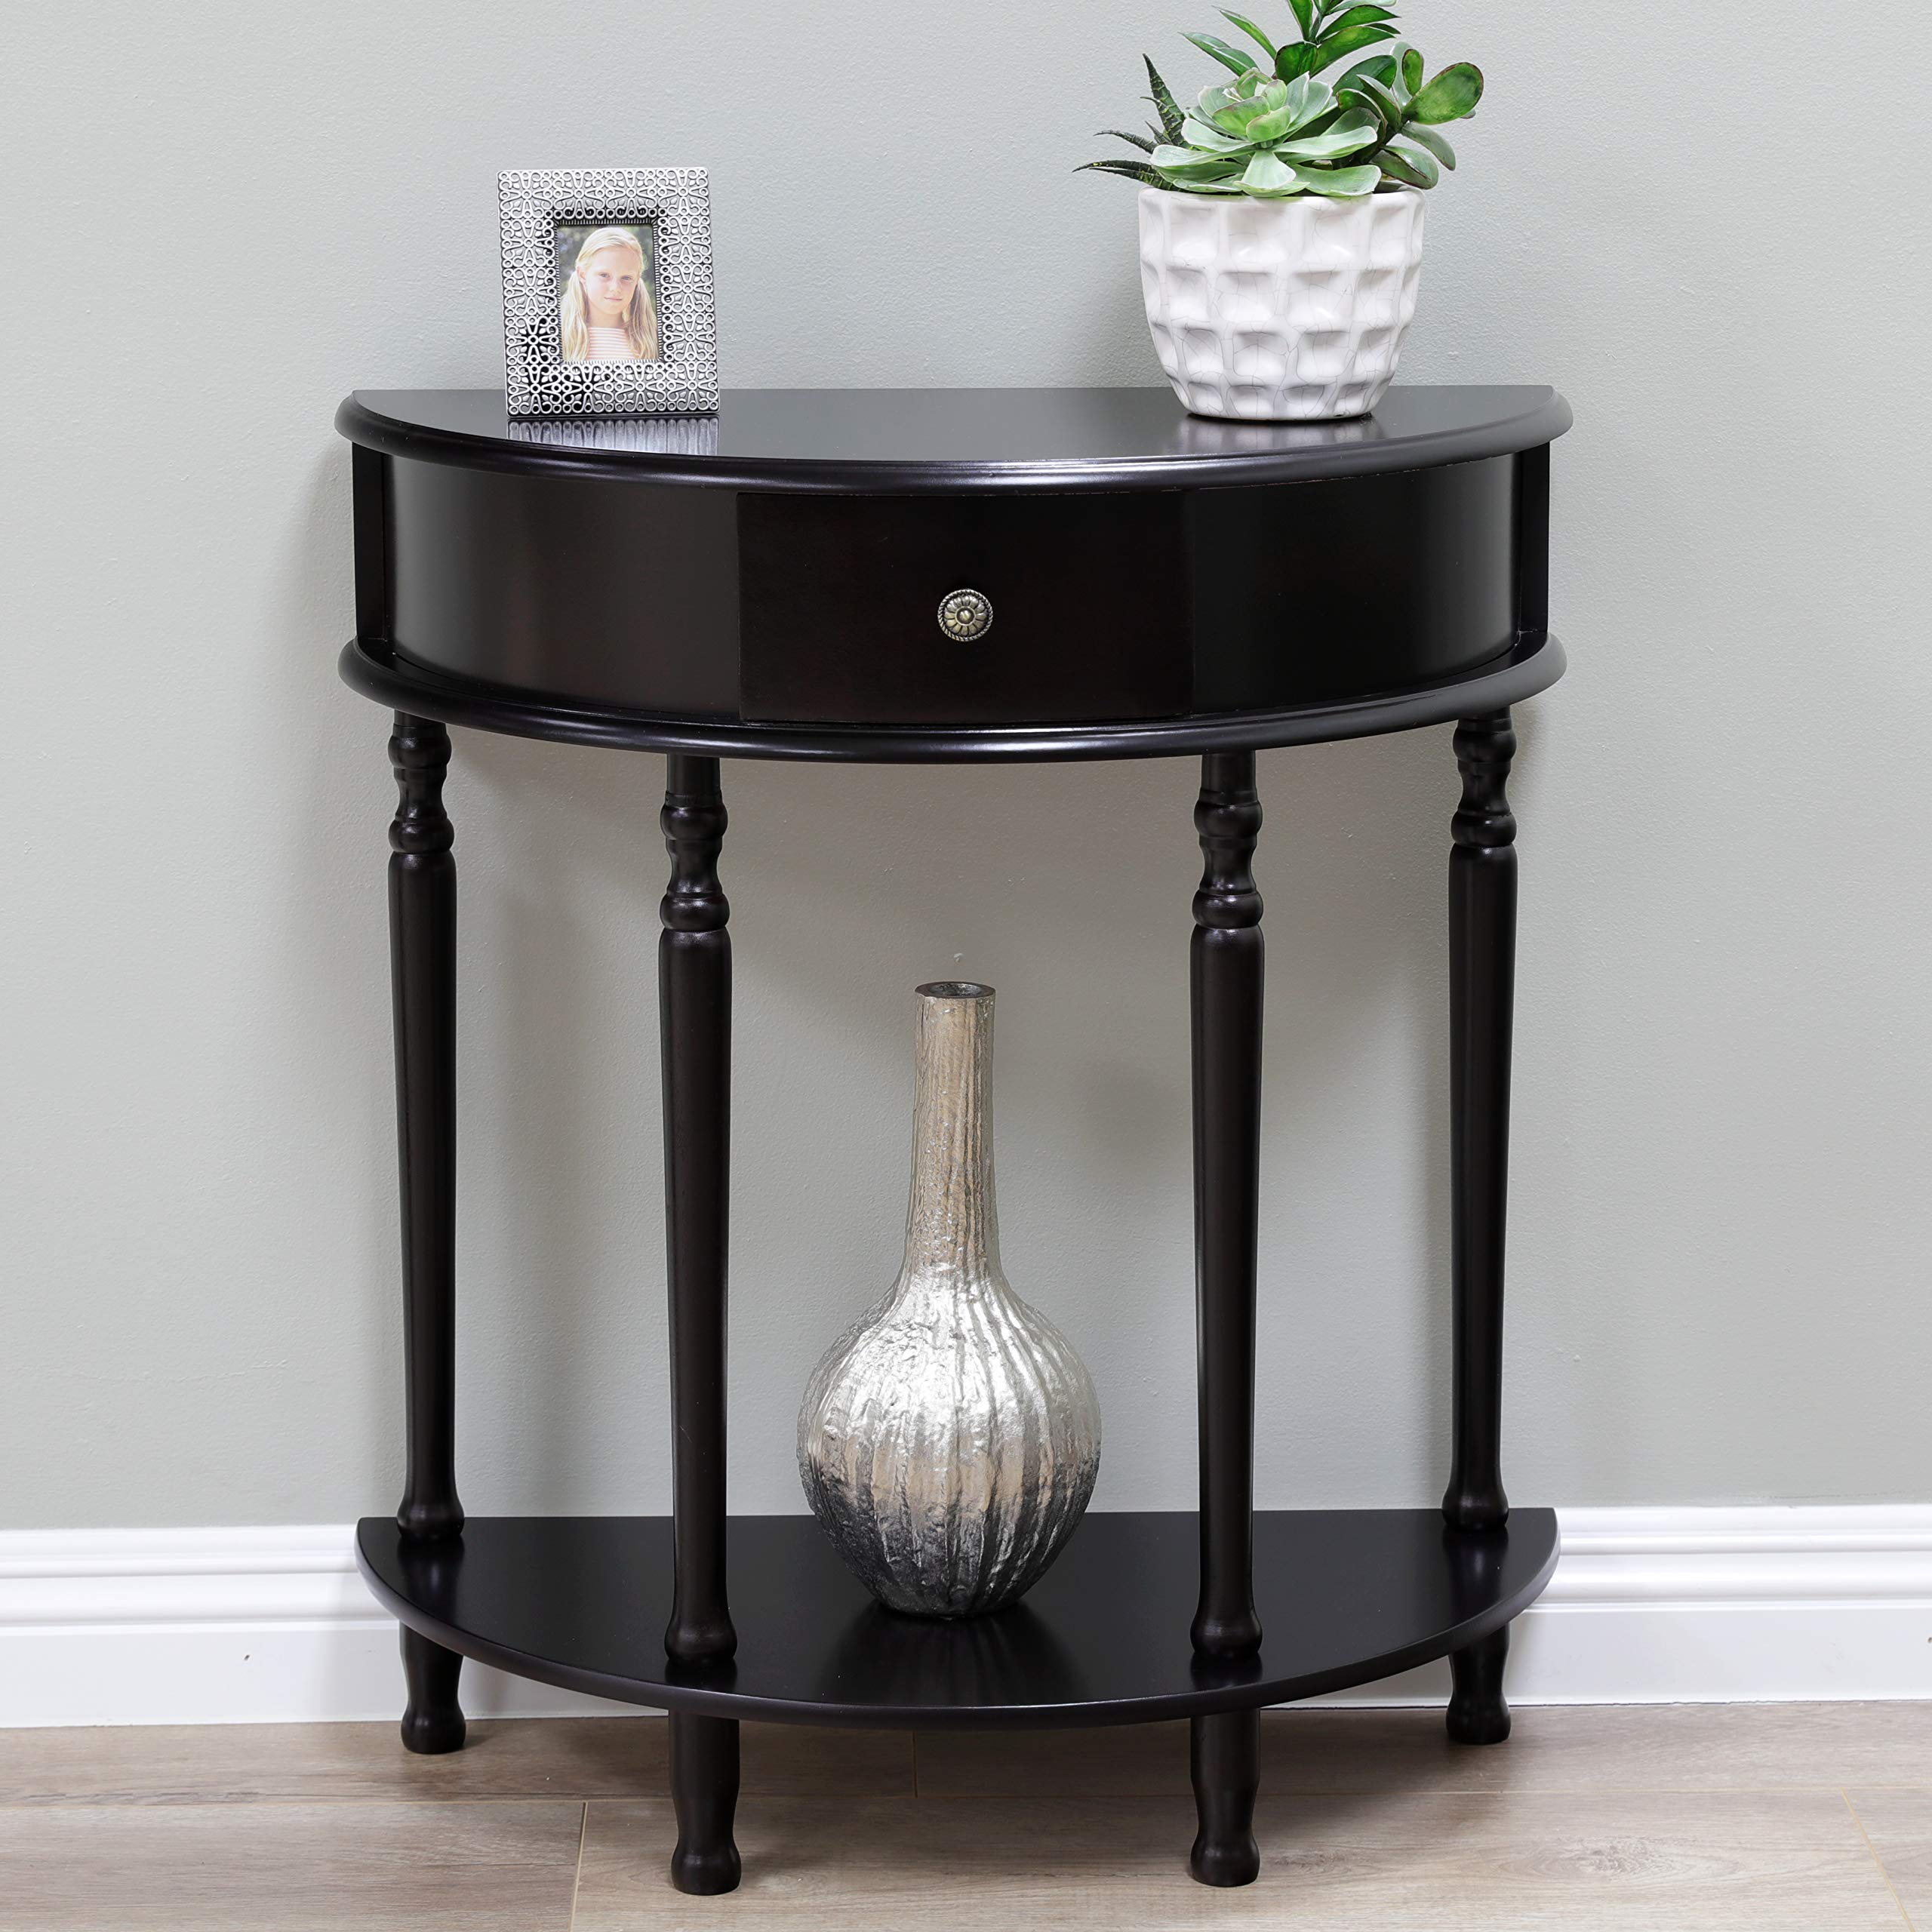 Frenchi Home Furnishing End Table/Side Table, Espresso Finish by Frenchi Home Furnishing